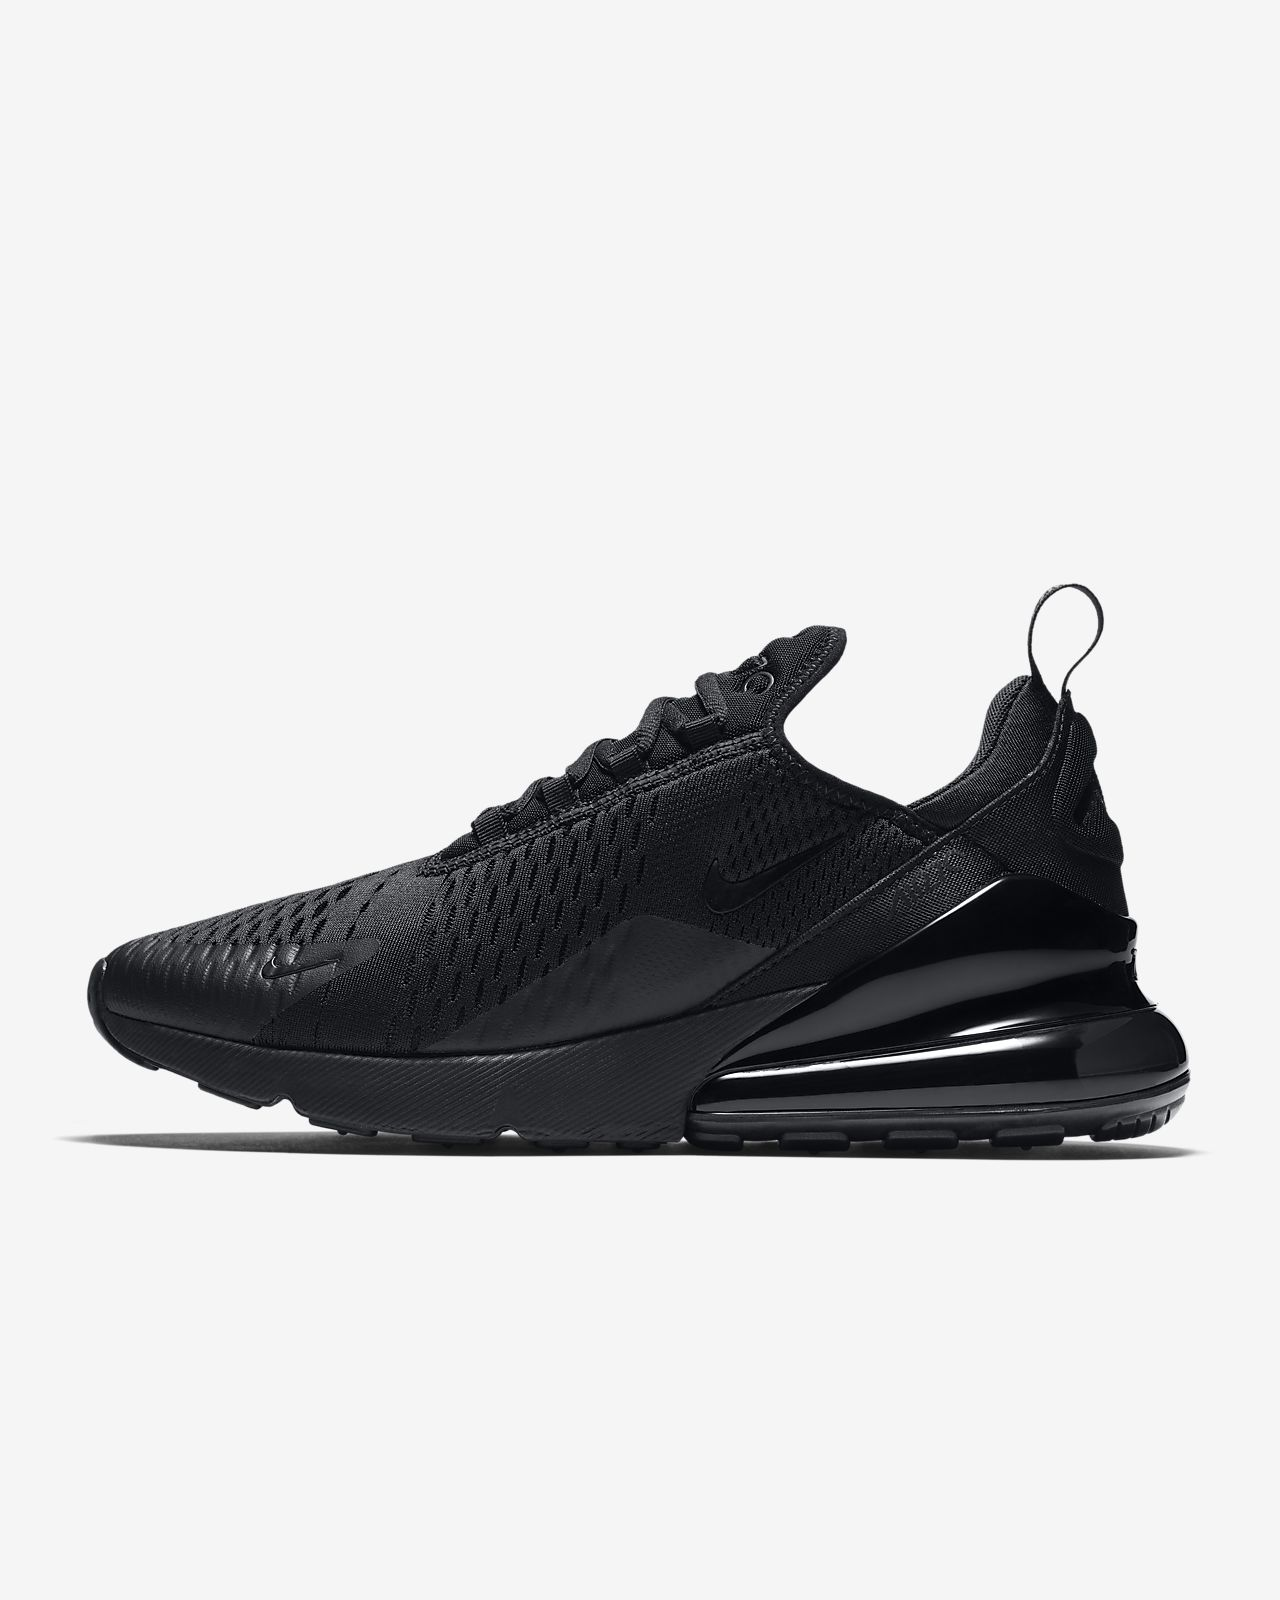 dbc9a03f9632 Nike Air Max 270 Men s Shoe. Nike.com CA